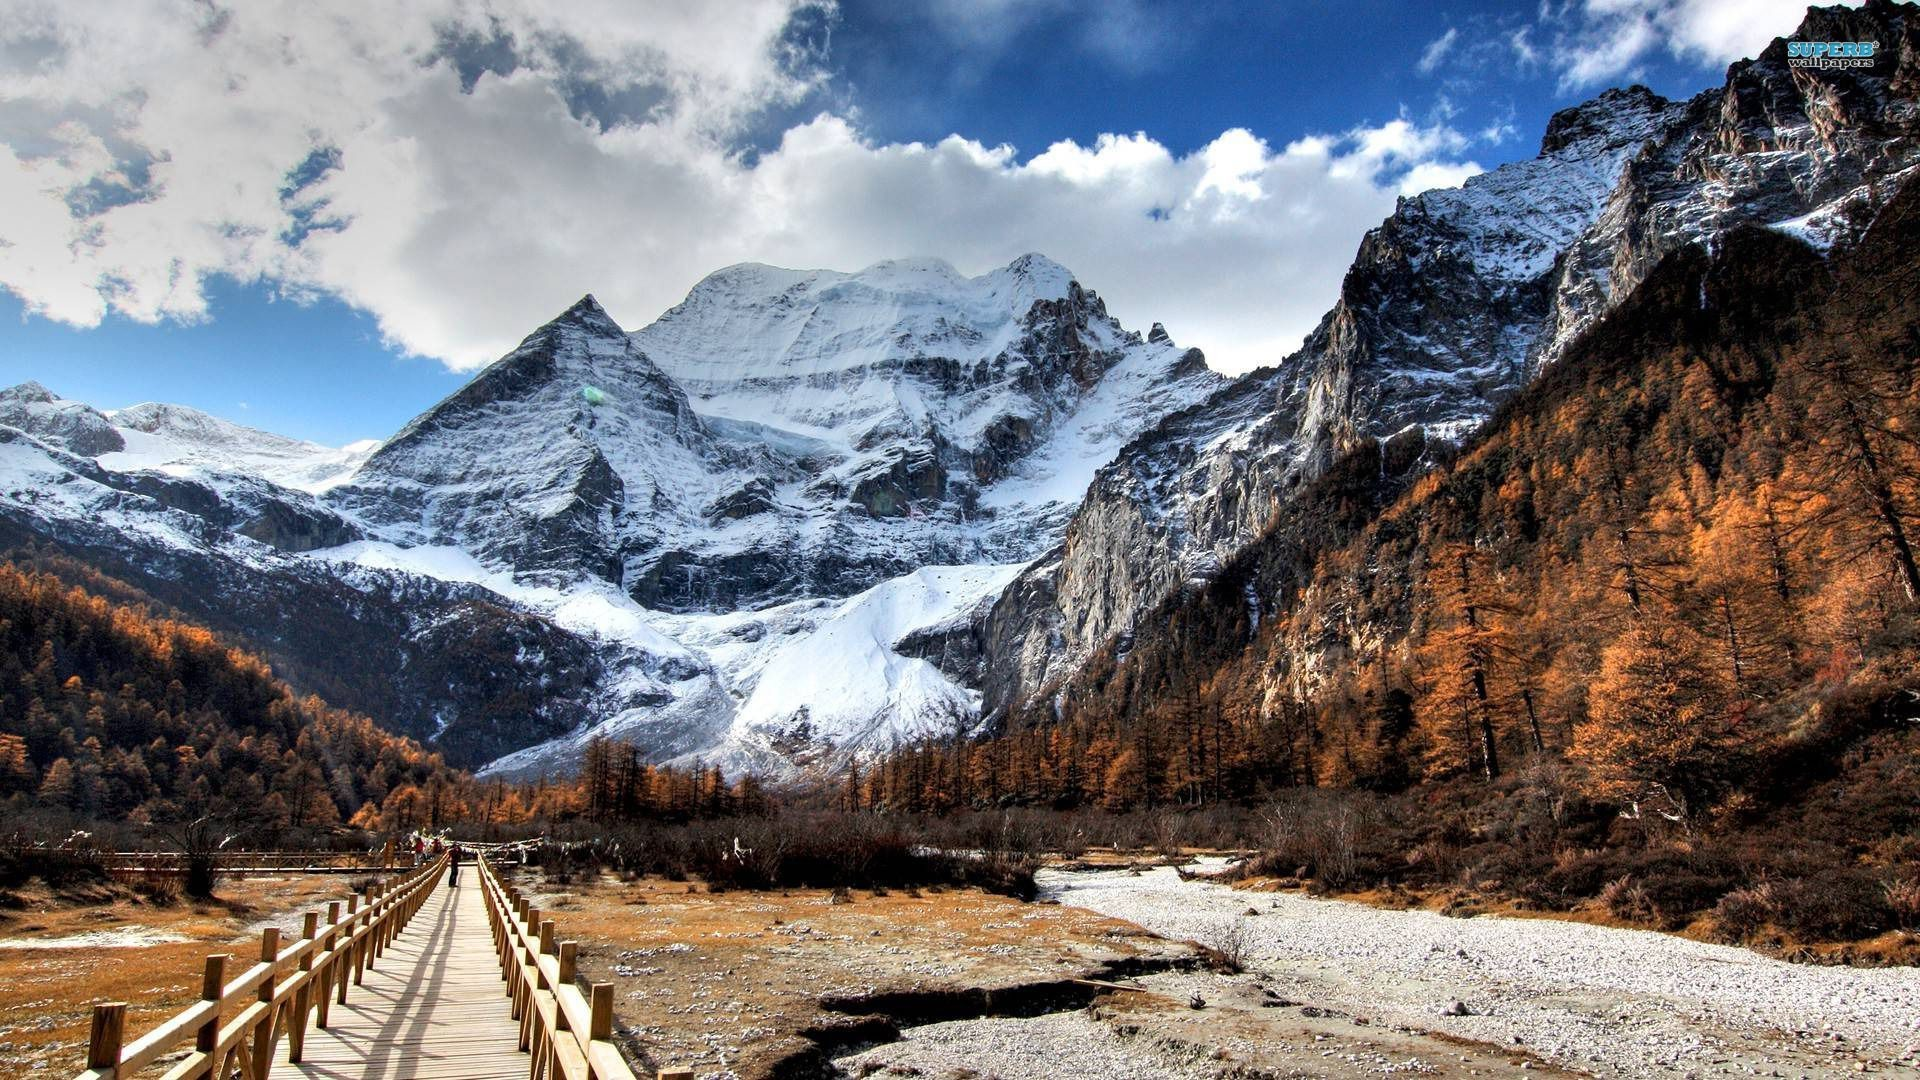 Snowy mountains wallpaper – Nature wallpapers – #15063